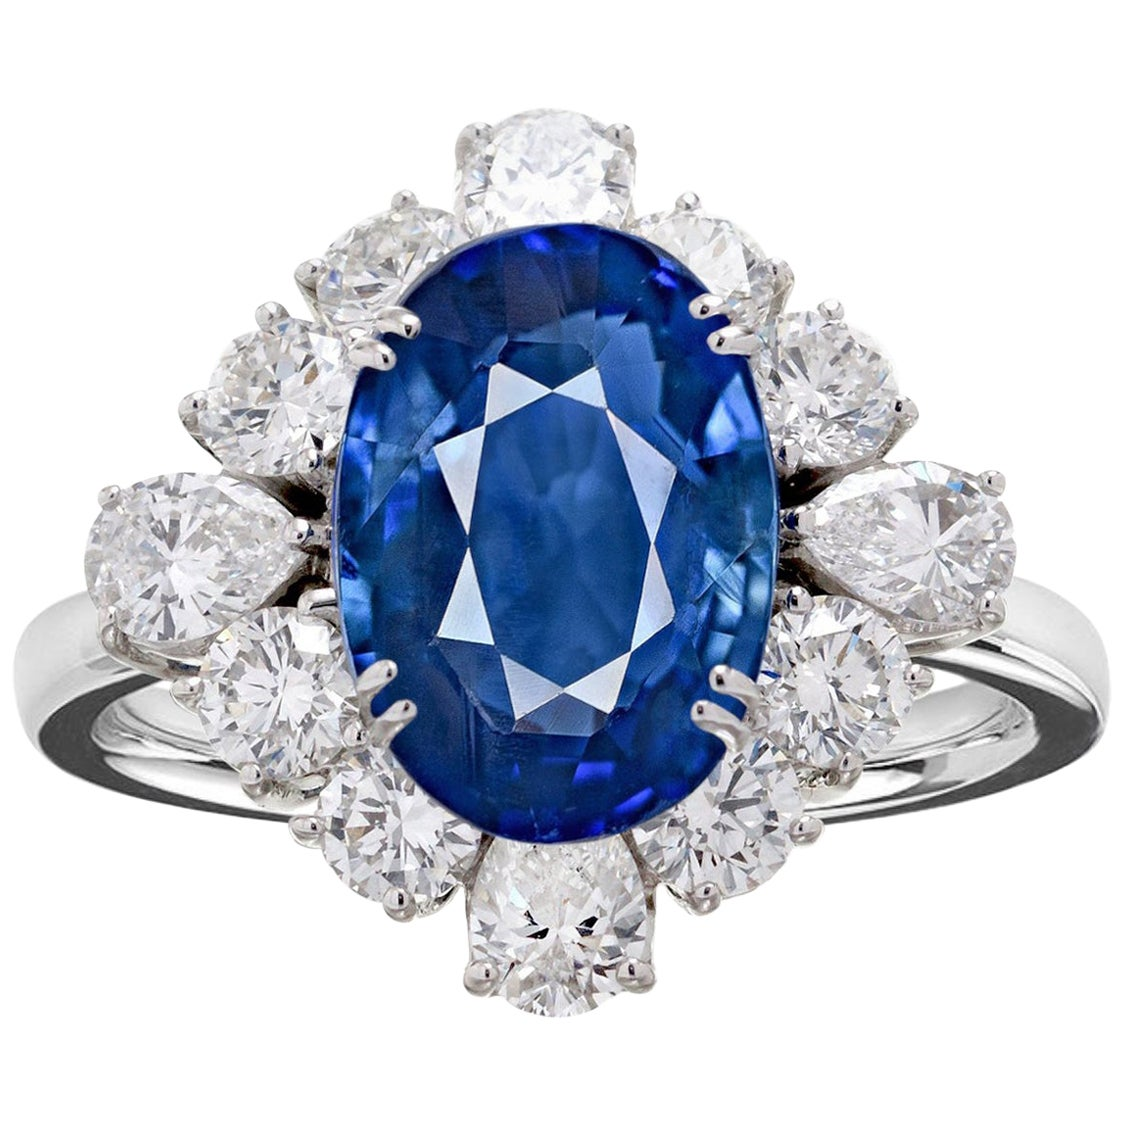 Exceptional GRS Certified 5.00 Carat Sri-Lanka Blue Sapphire Cocktail Ring